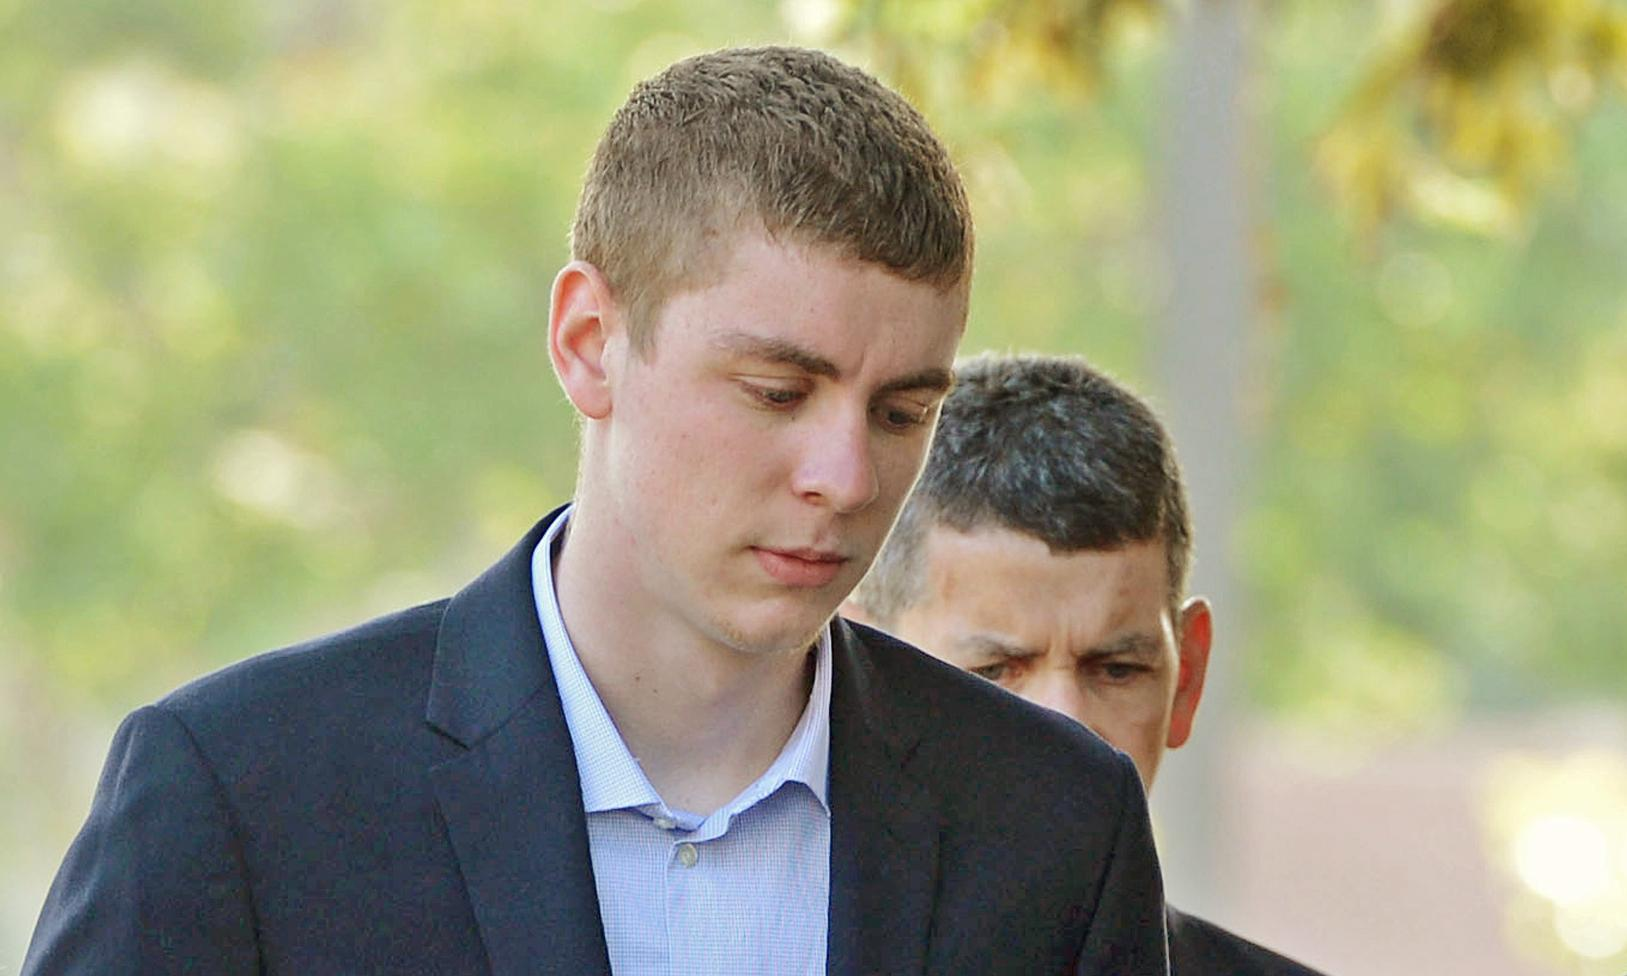 Brock Allen Turner And Guilt Vs. Responsibility